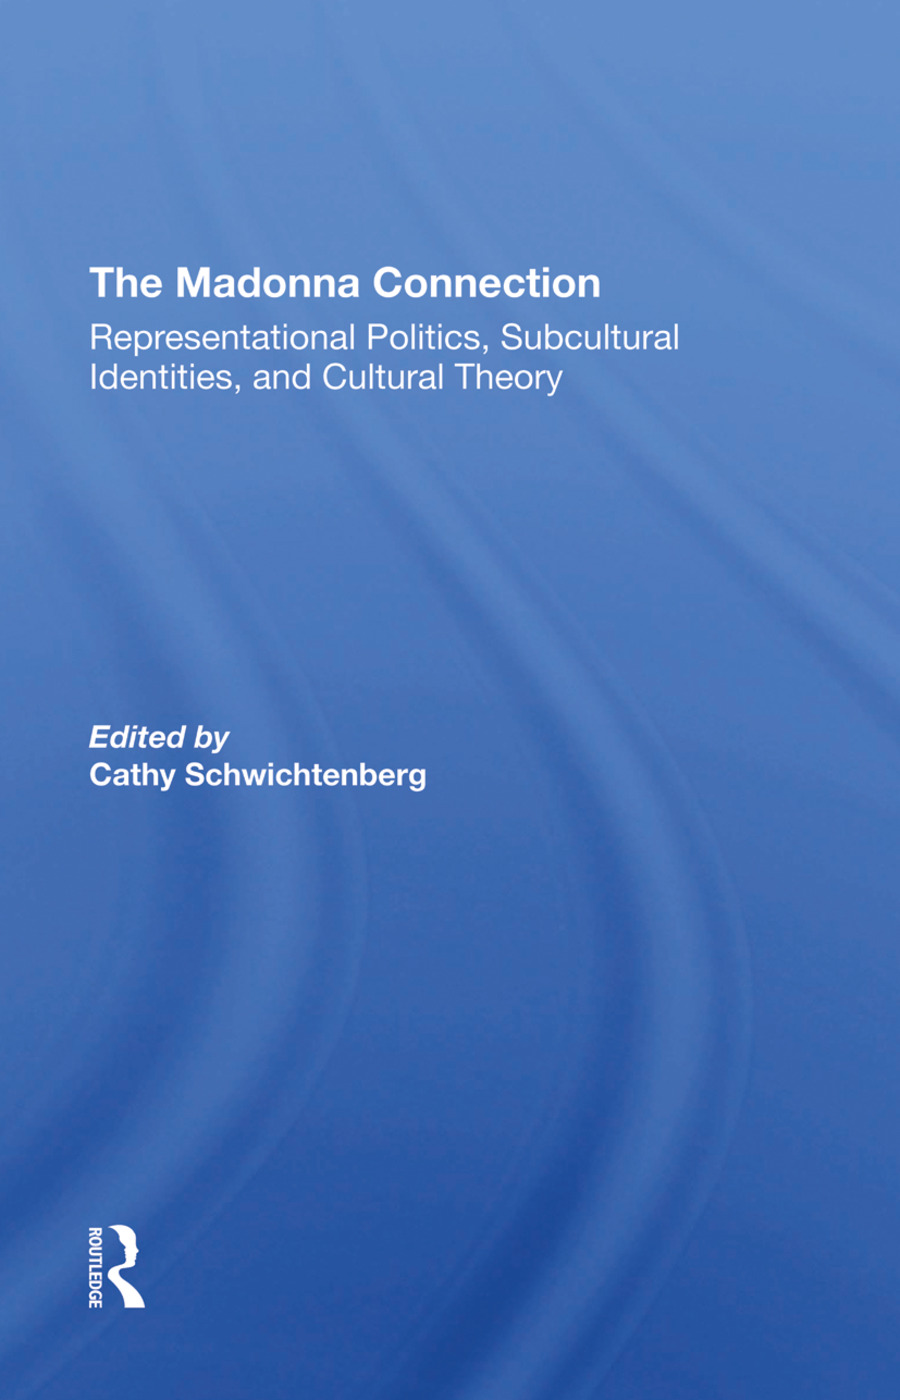 The Madonna Connection